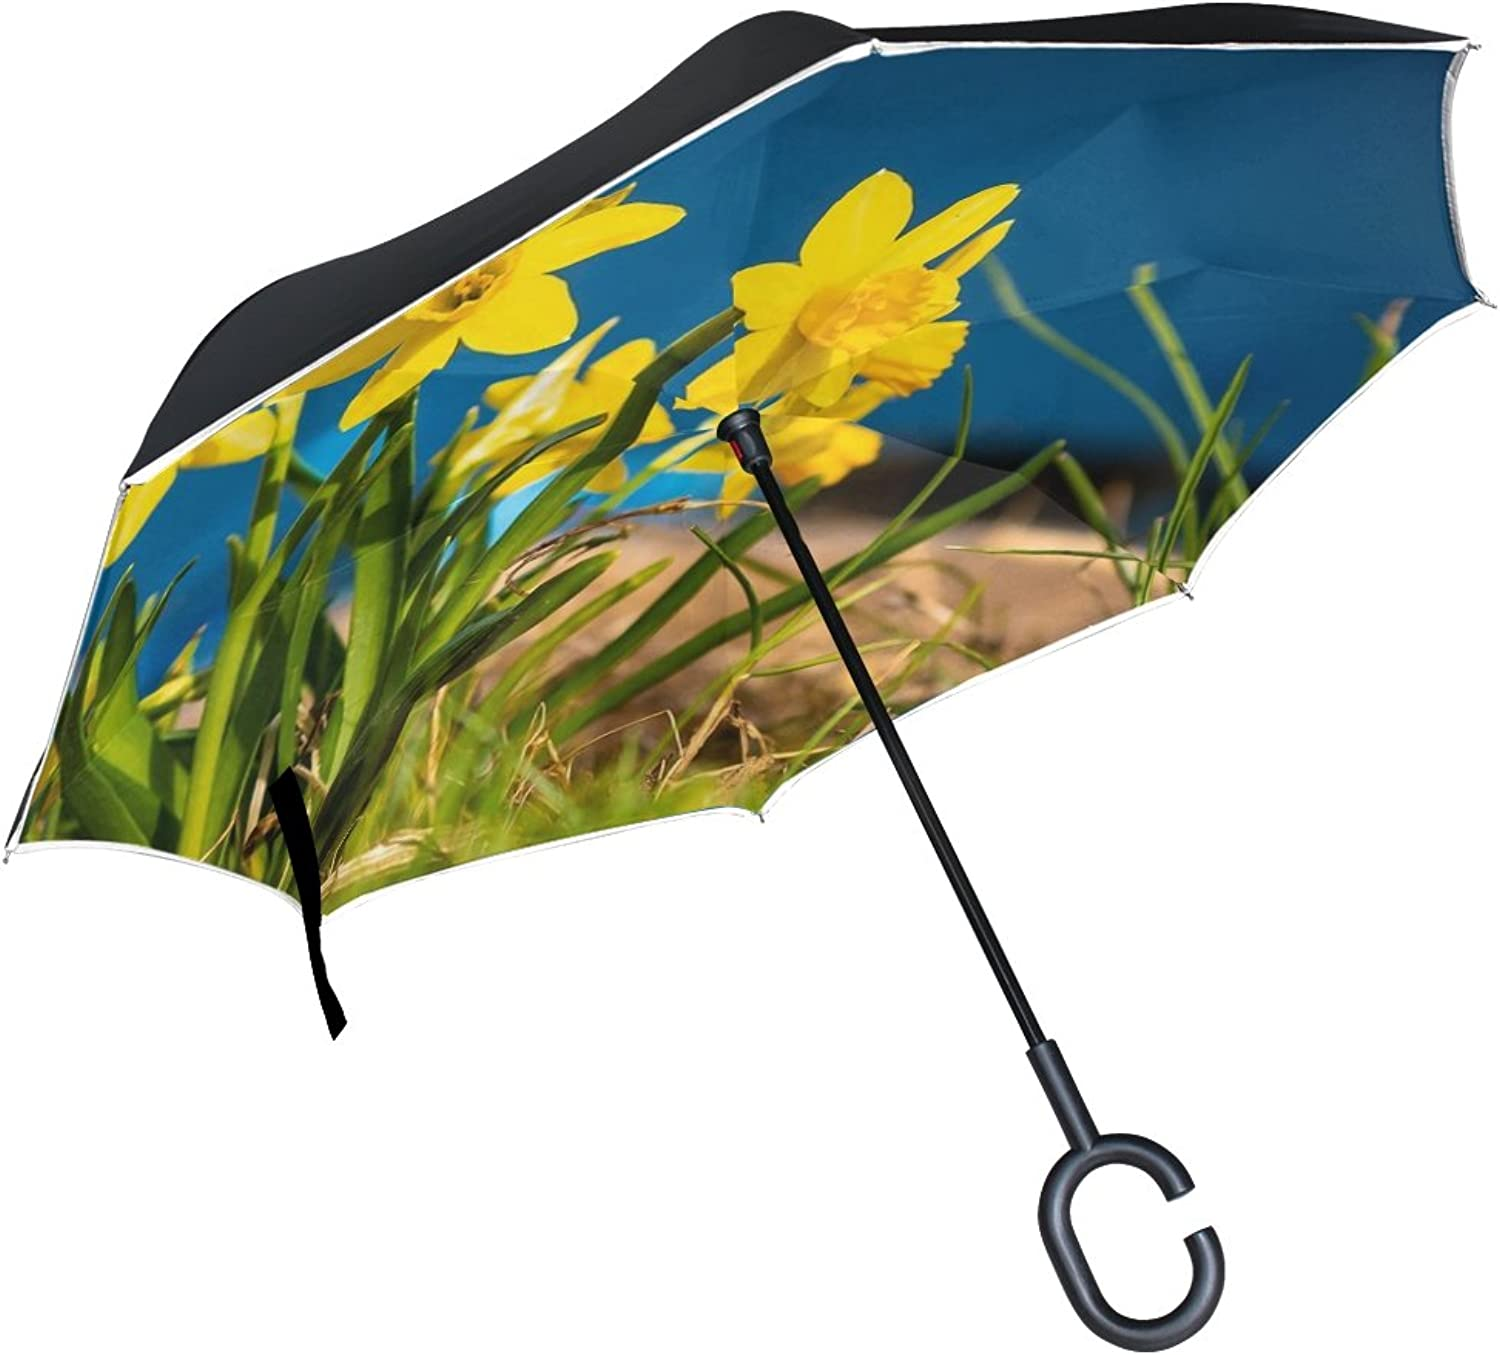 Double Layer Ingreened Nature Flower Plant Grass Meadow Umbrellas Reverse Folding Umbrella Windproof Uv Predection Big Straight Umbrella for Car Rain Outdoor with CShaped Handle